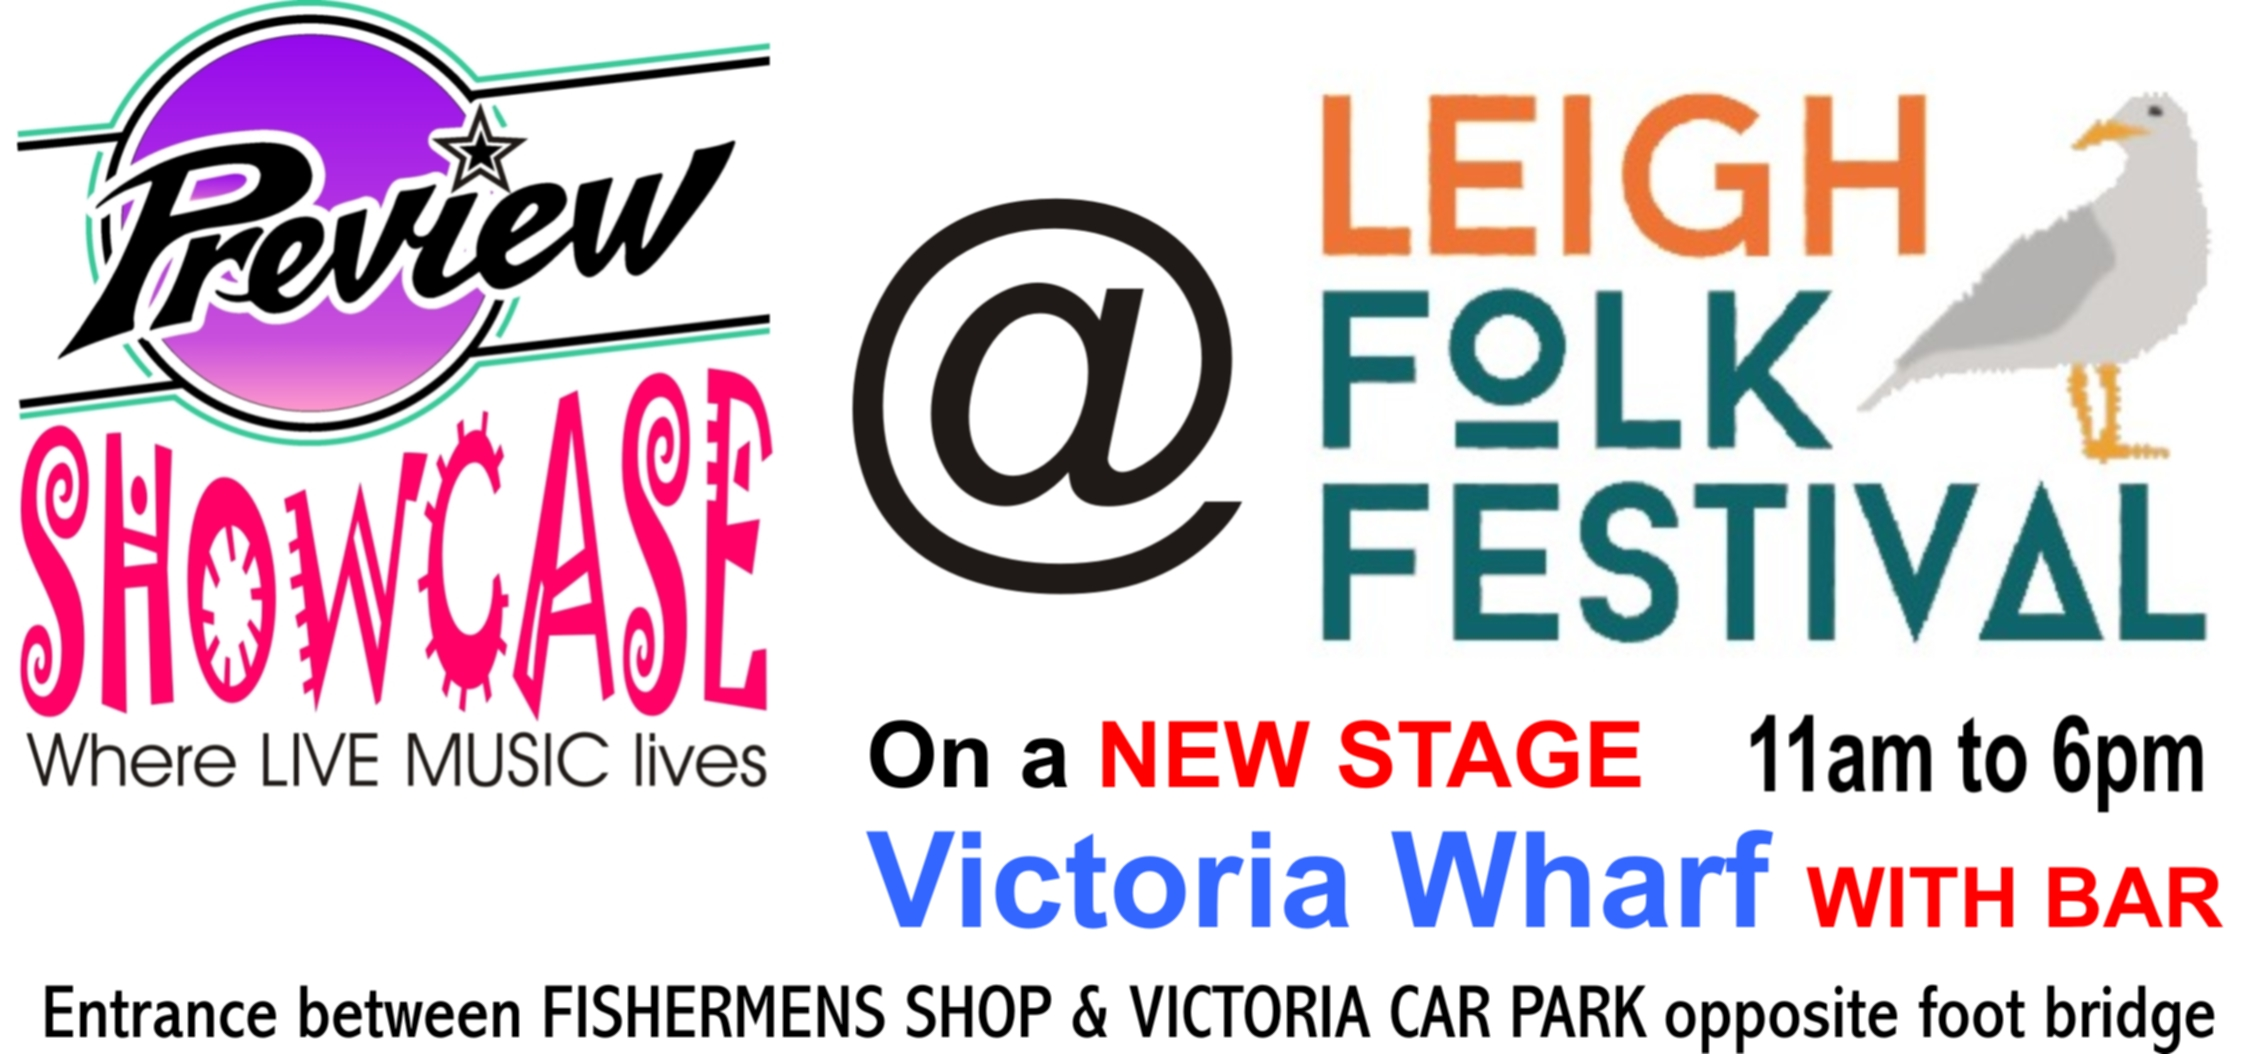 PREVIEW showcase @ THE LEIGH FOLK FESTIVAL